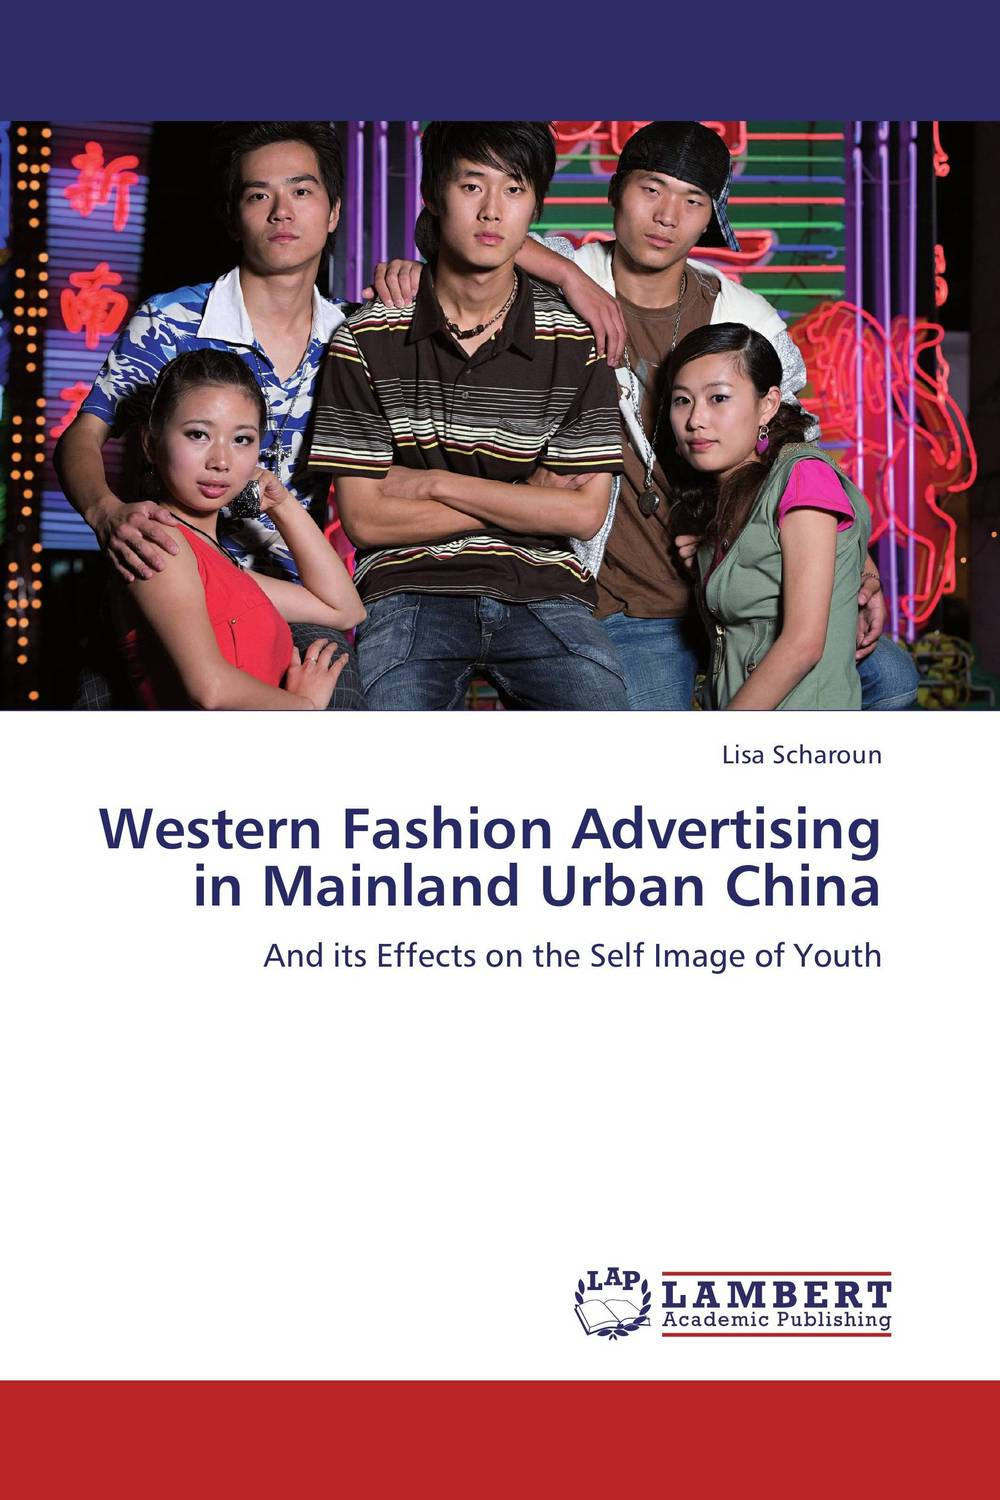 Western Fashion Advertising in Mainland Urban China garrett social reformers in urban china – the chinese y m c a